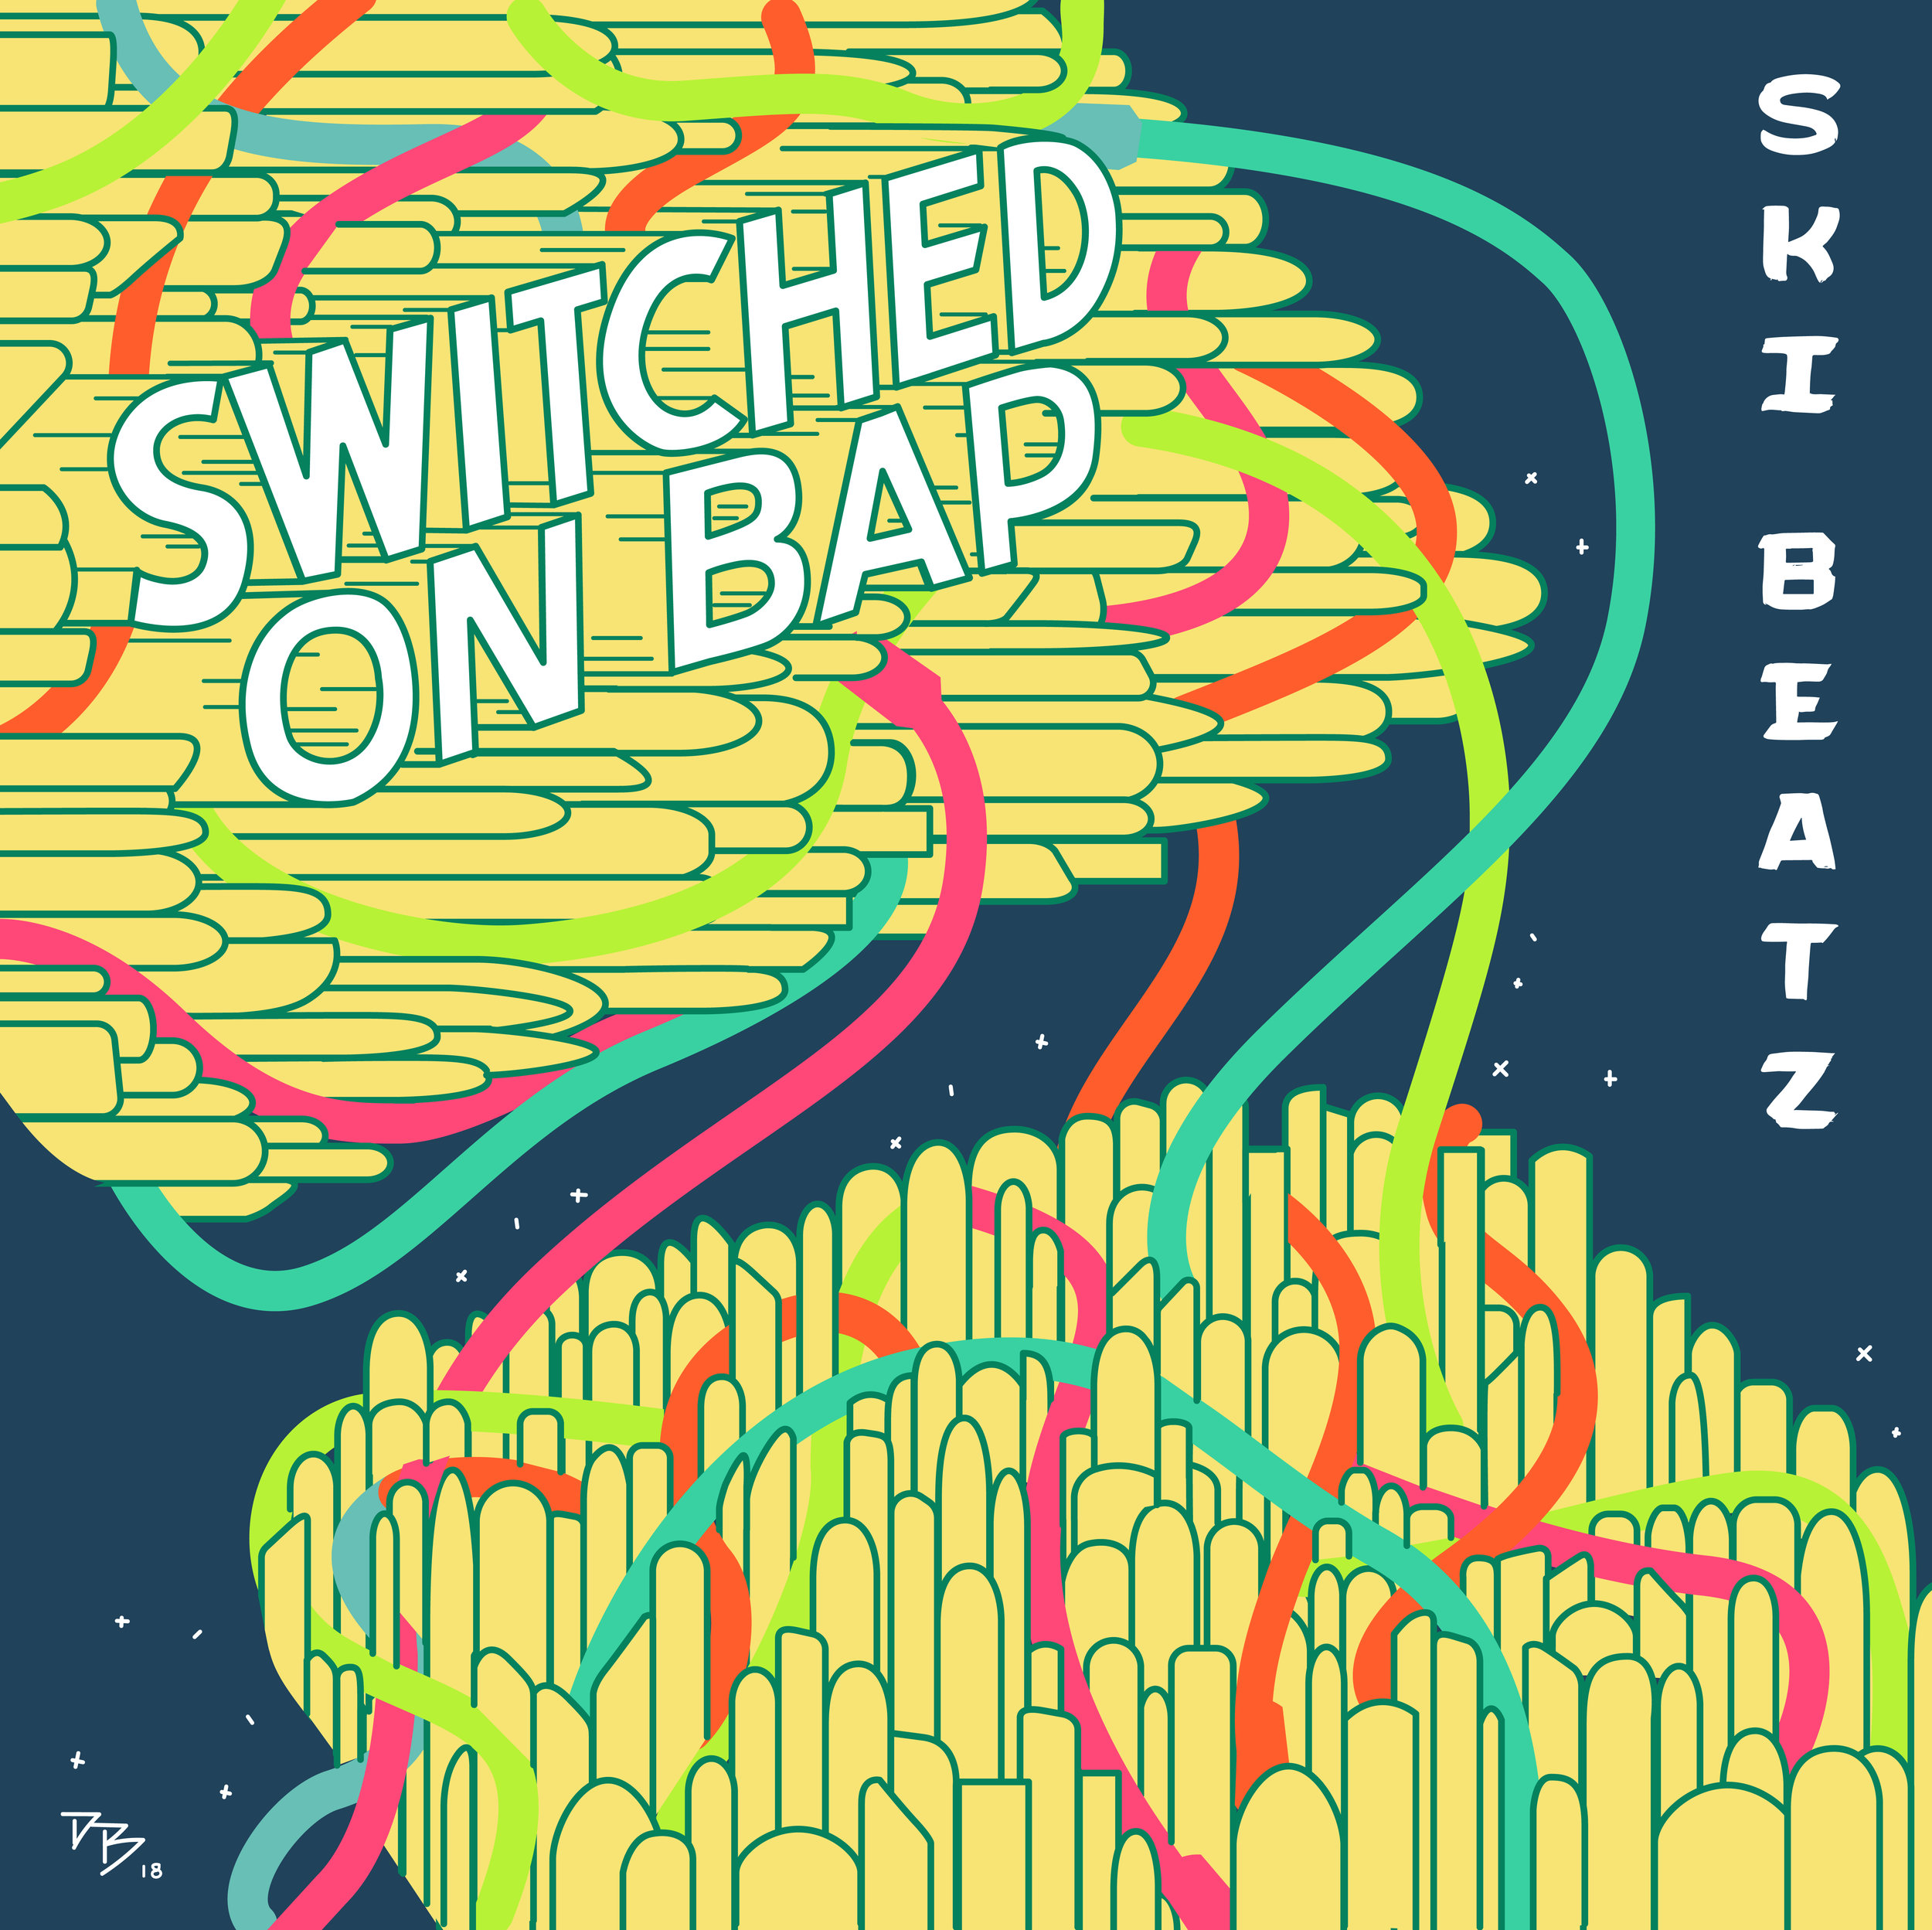 SWITCHEDONBAP_FINAL-01.jpg